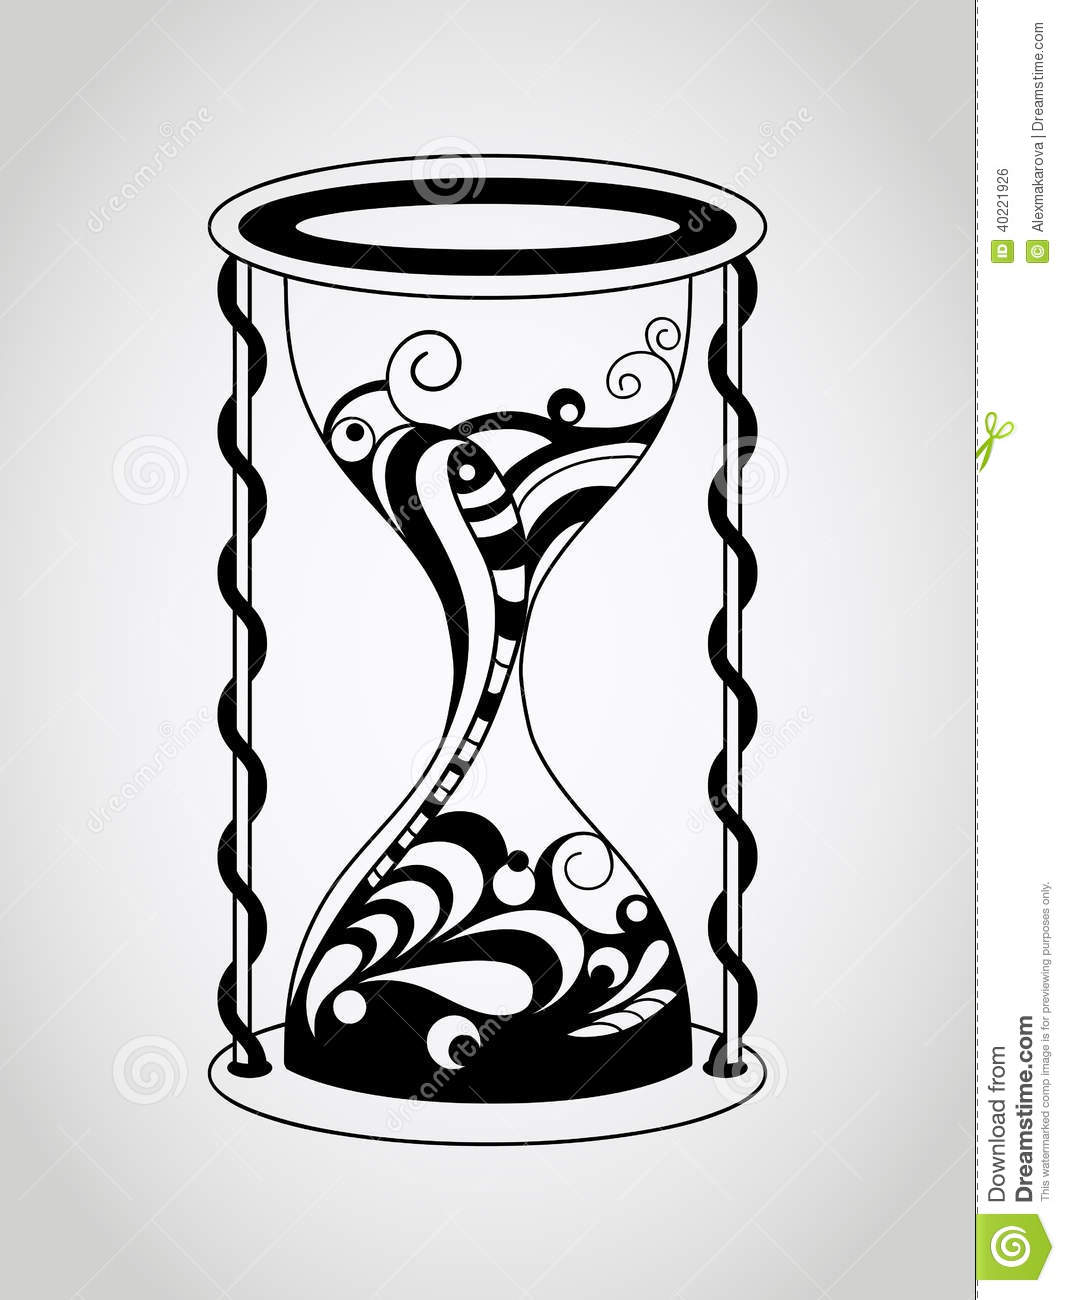 Vector Tattoo Hourglass Stock Vector - Image: 40221926